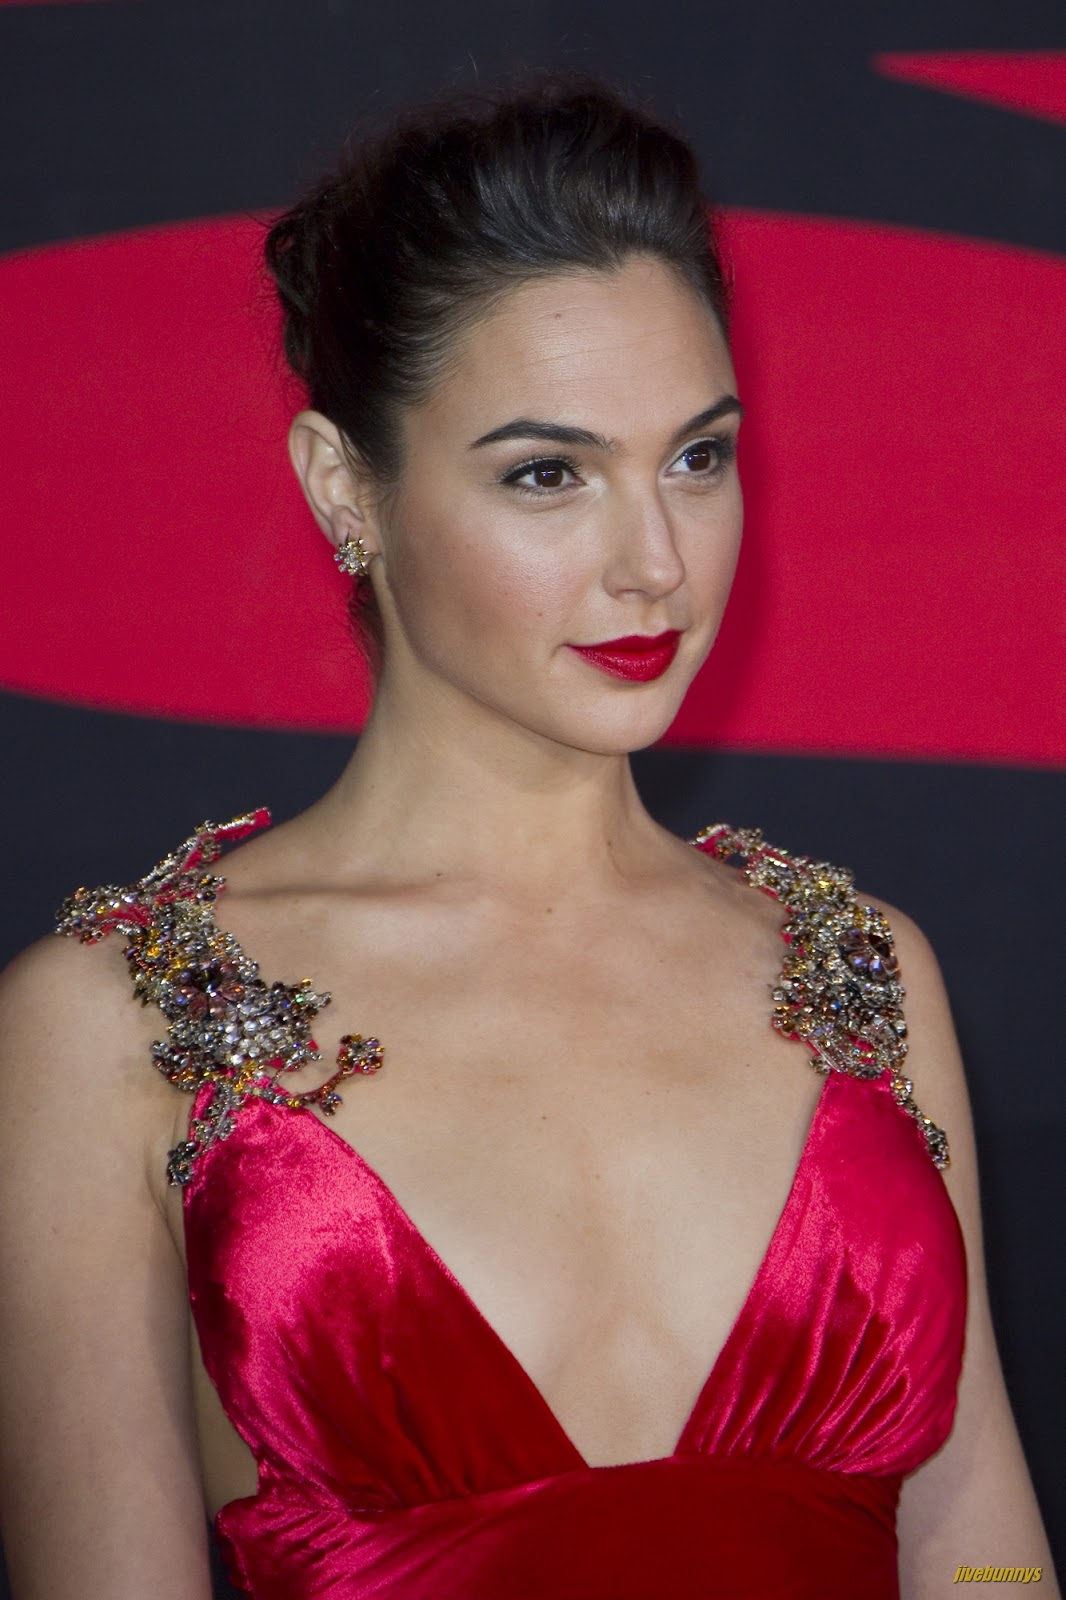 Jivebunnys Female Celebrity Picture Gallery: Gal Gadot Sexy Actress Image Gallery 1